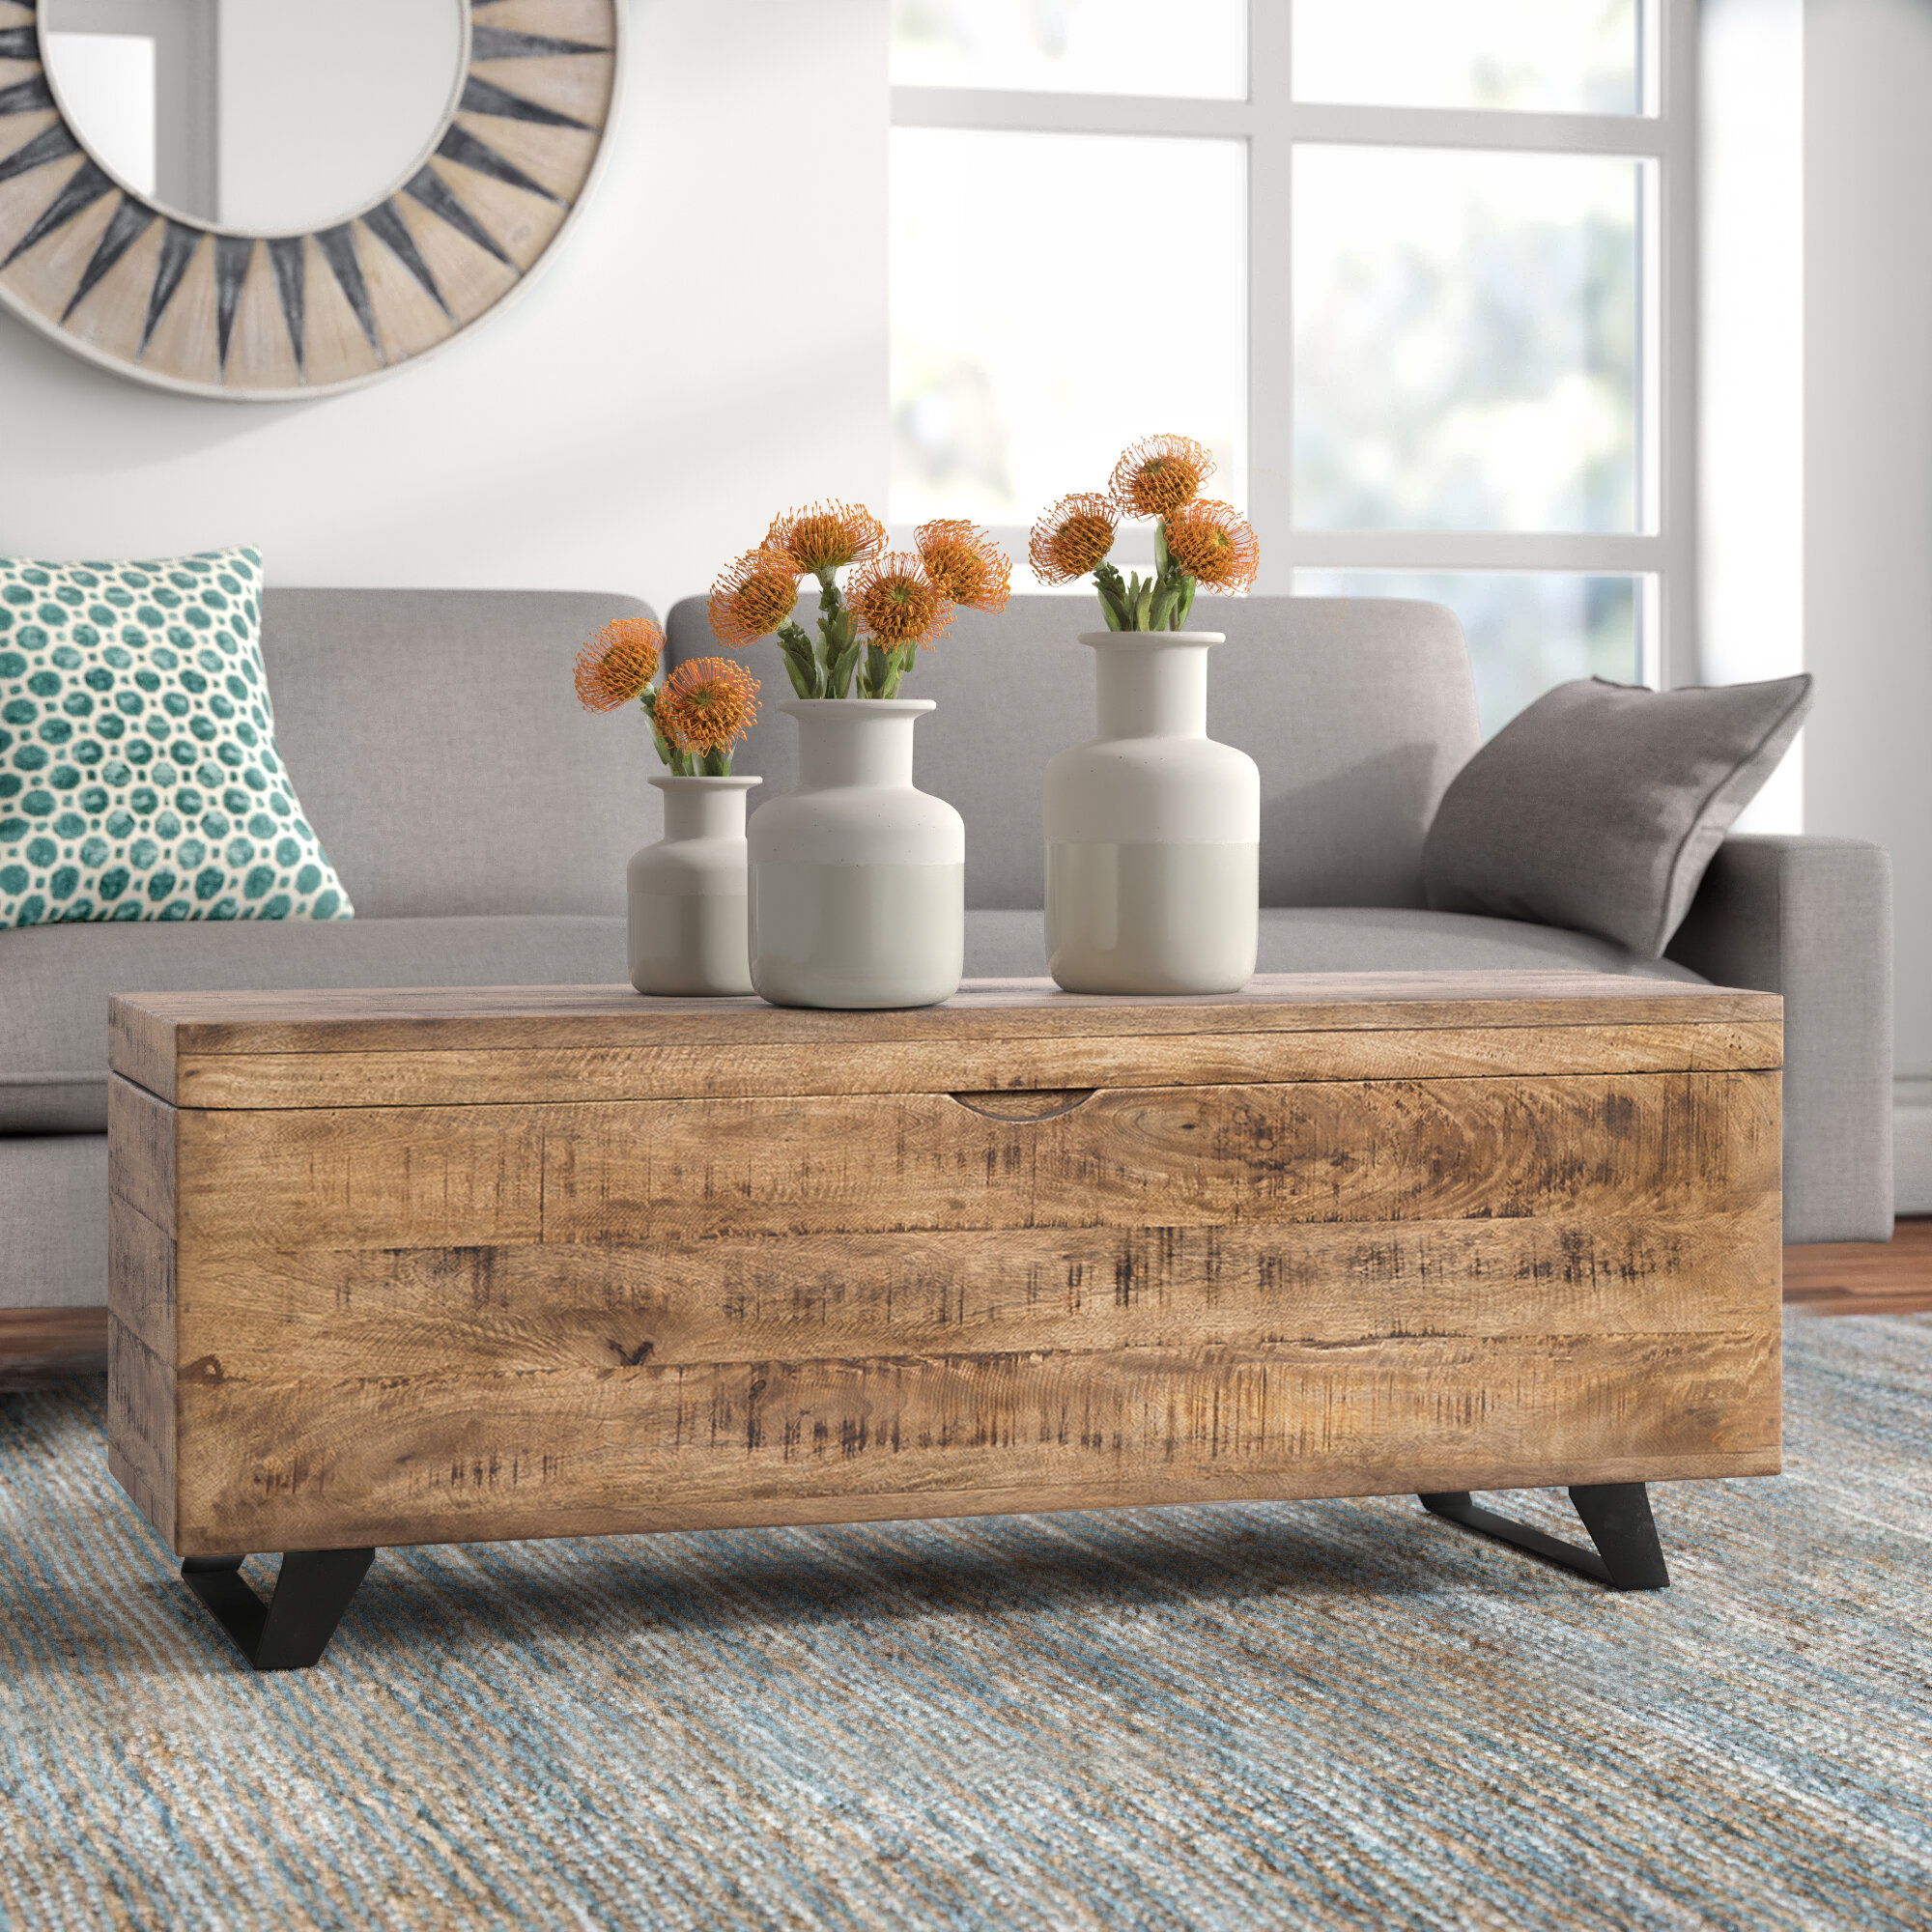 Ovid Solid Wood Lift Top Sled Coffee Table With Storage Reviews Joss Main